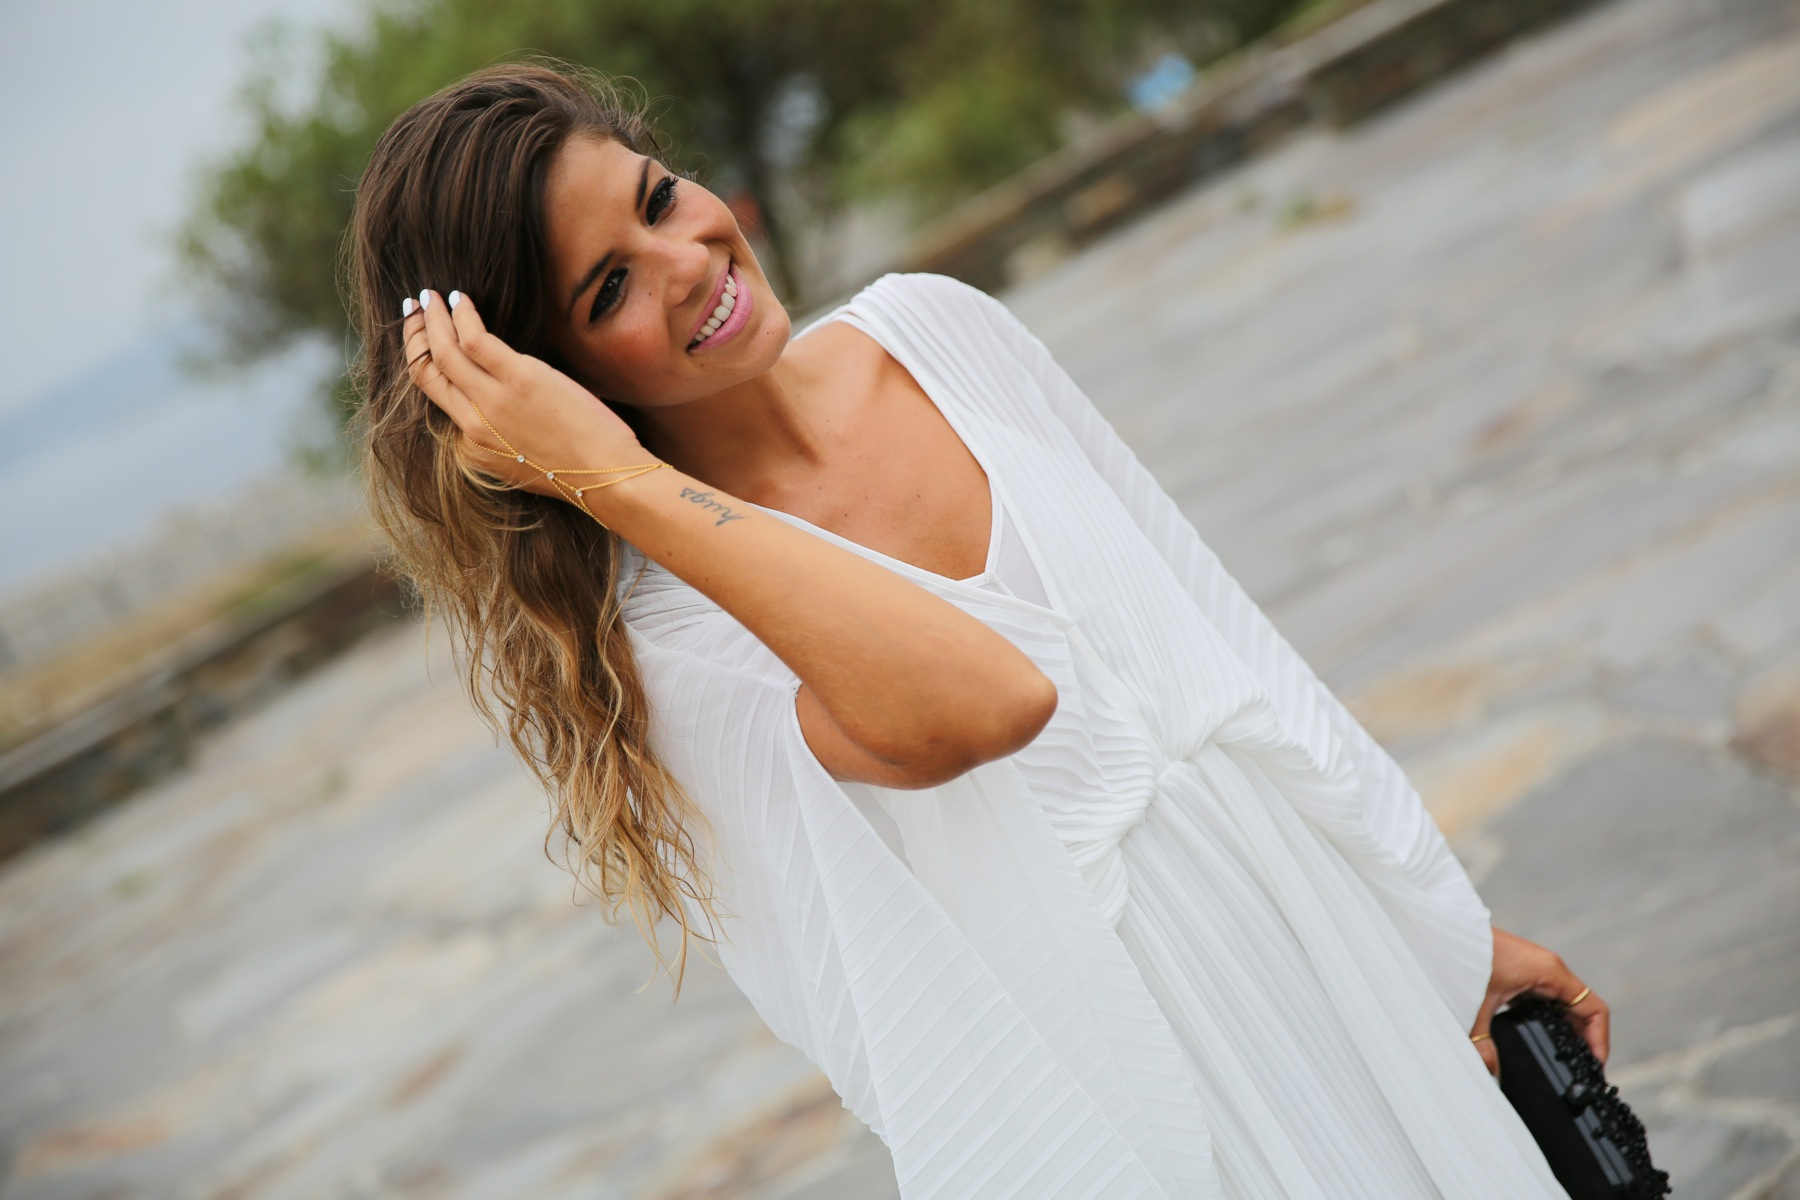 trendy_taste-look-outfit-street_style-fashion_spain-moda_españa-blog-blogger-vestido_blanco-white_dress-müic-jewels-joyas-leo_sandals-sandalias_leopardo-clutch_pedreria-4